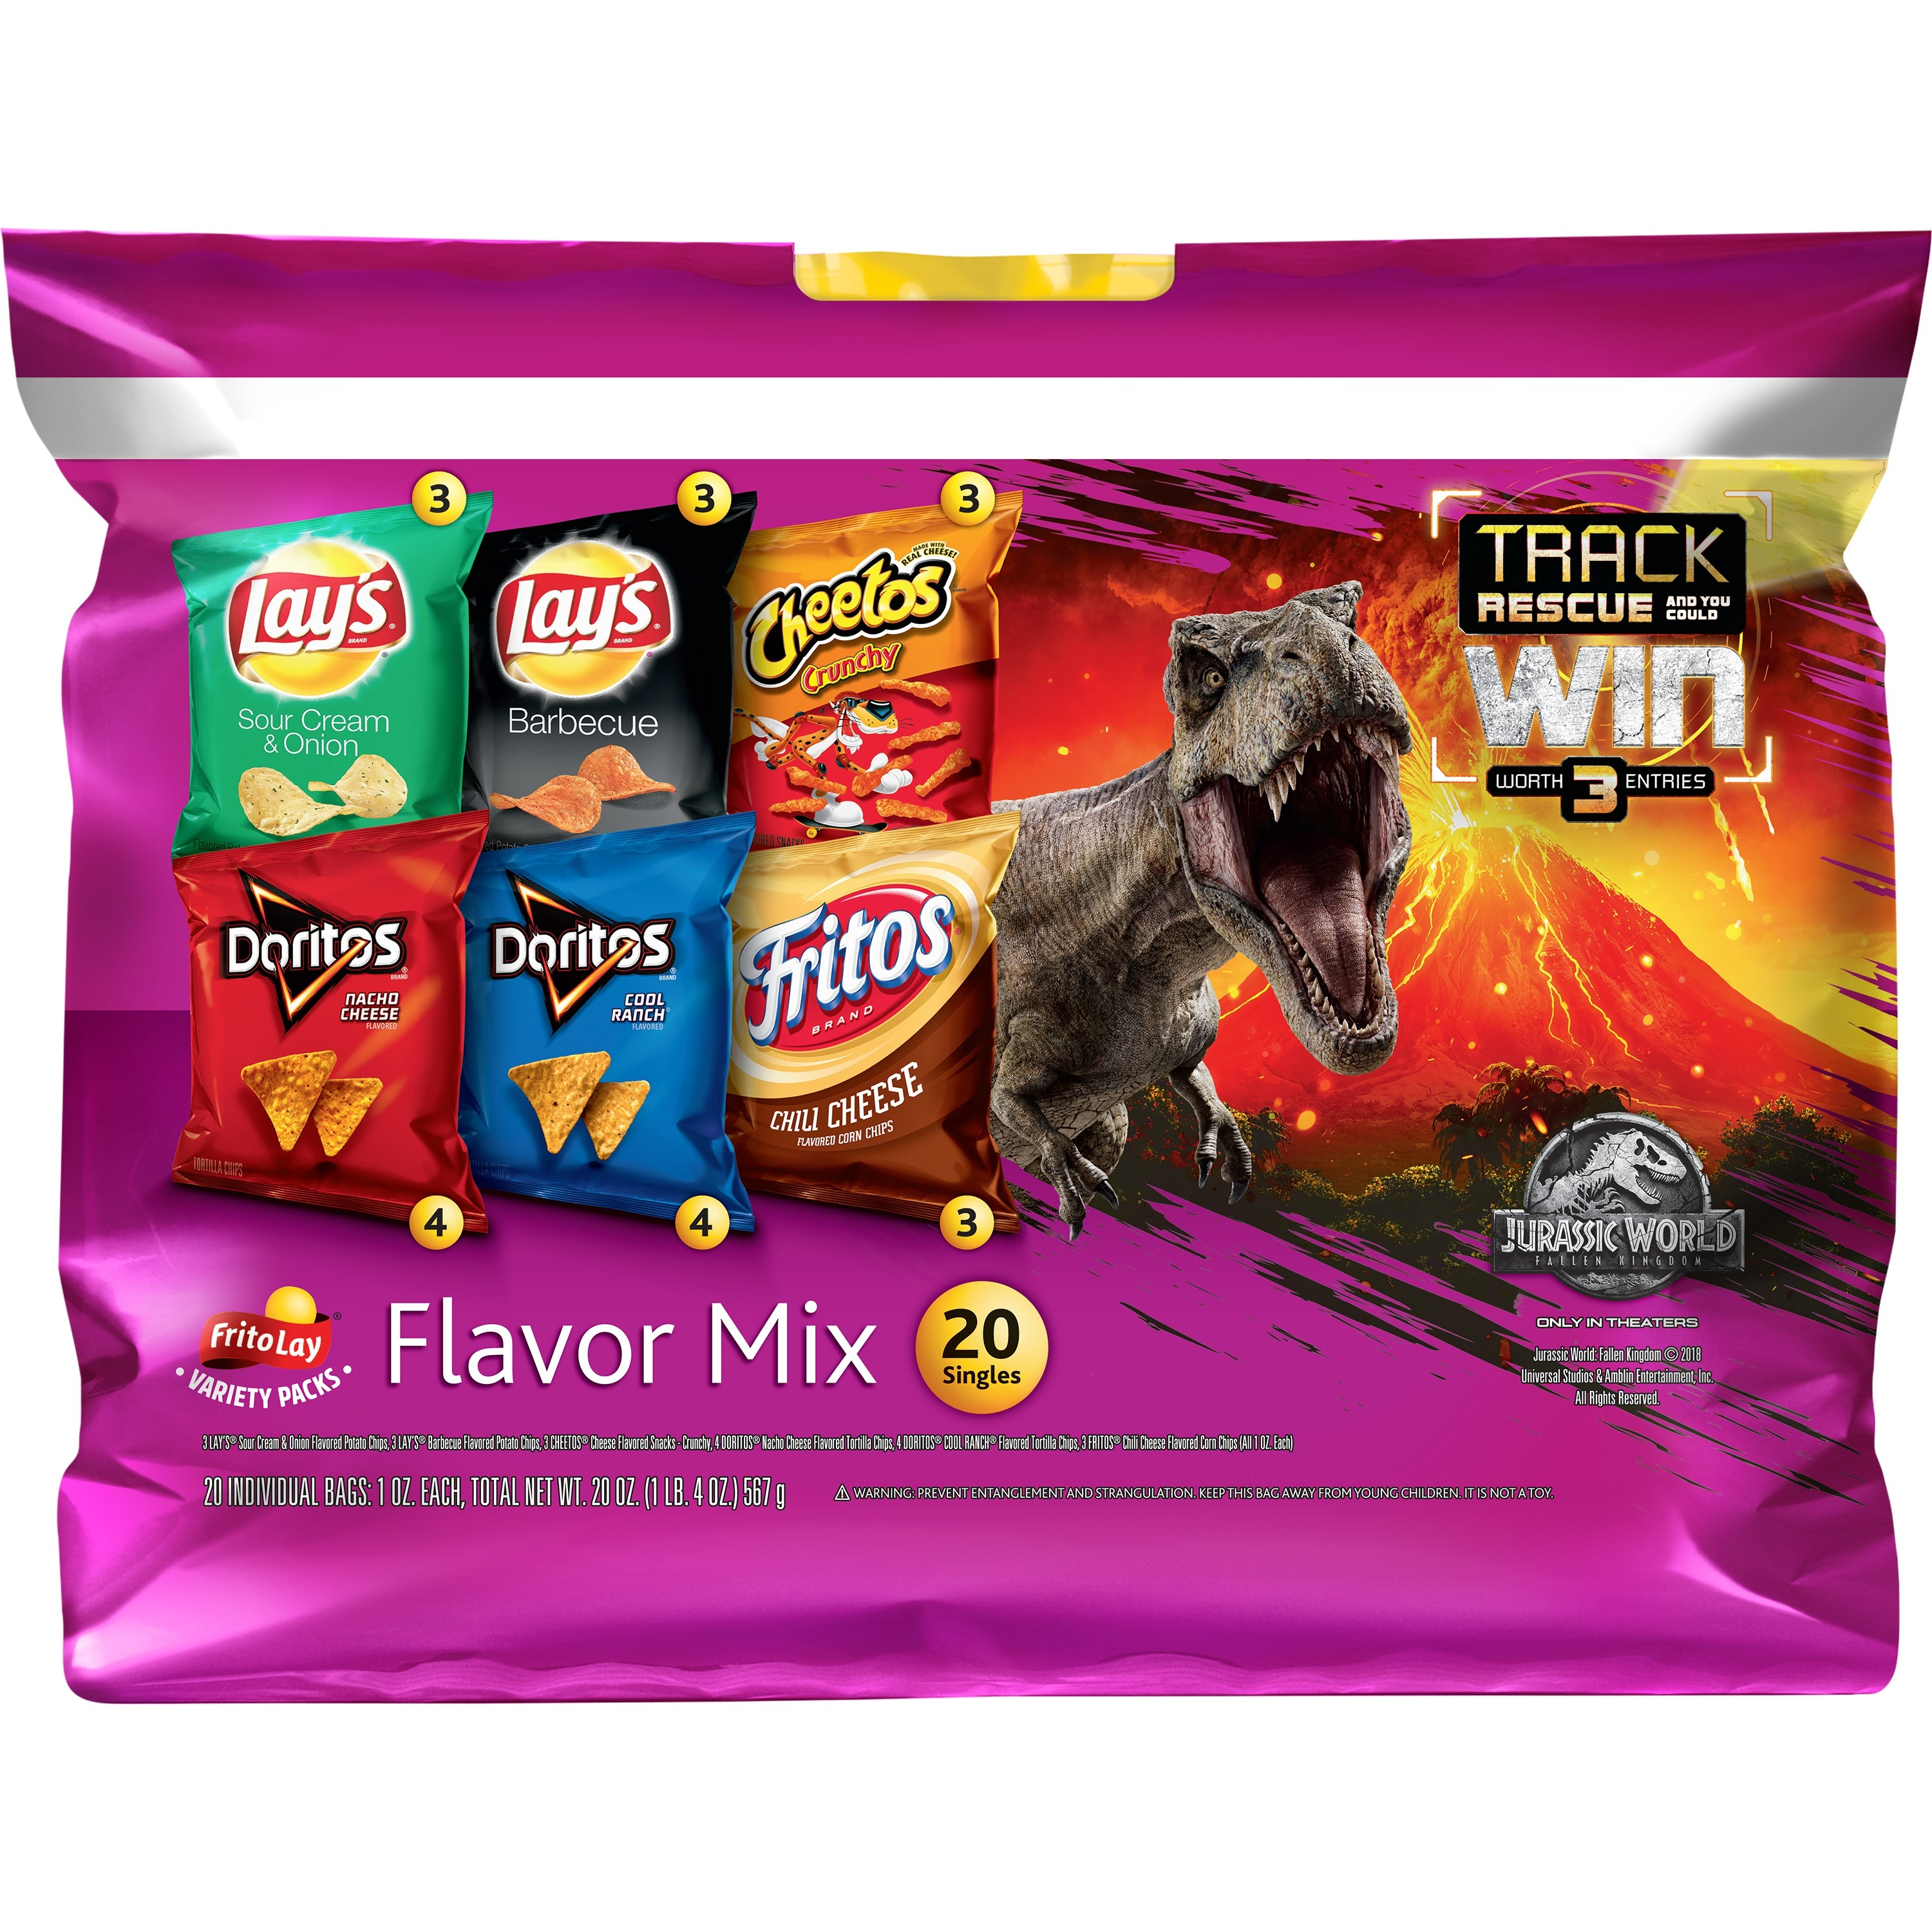 (2 Packs) Frito-Lay, Flavor Mix Variety Pack, 20 ct